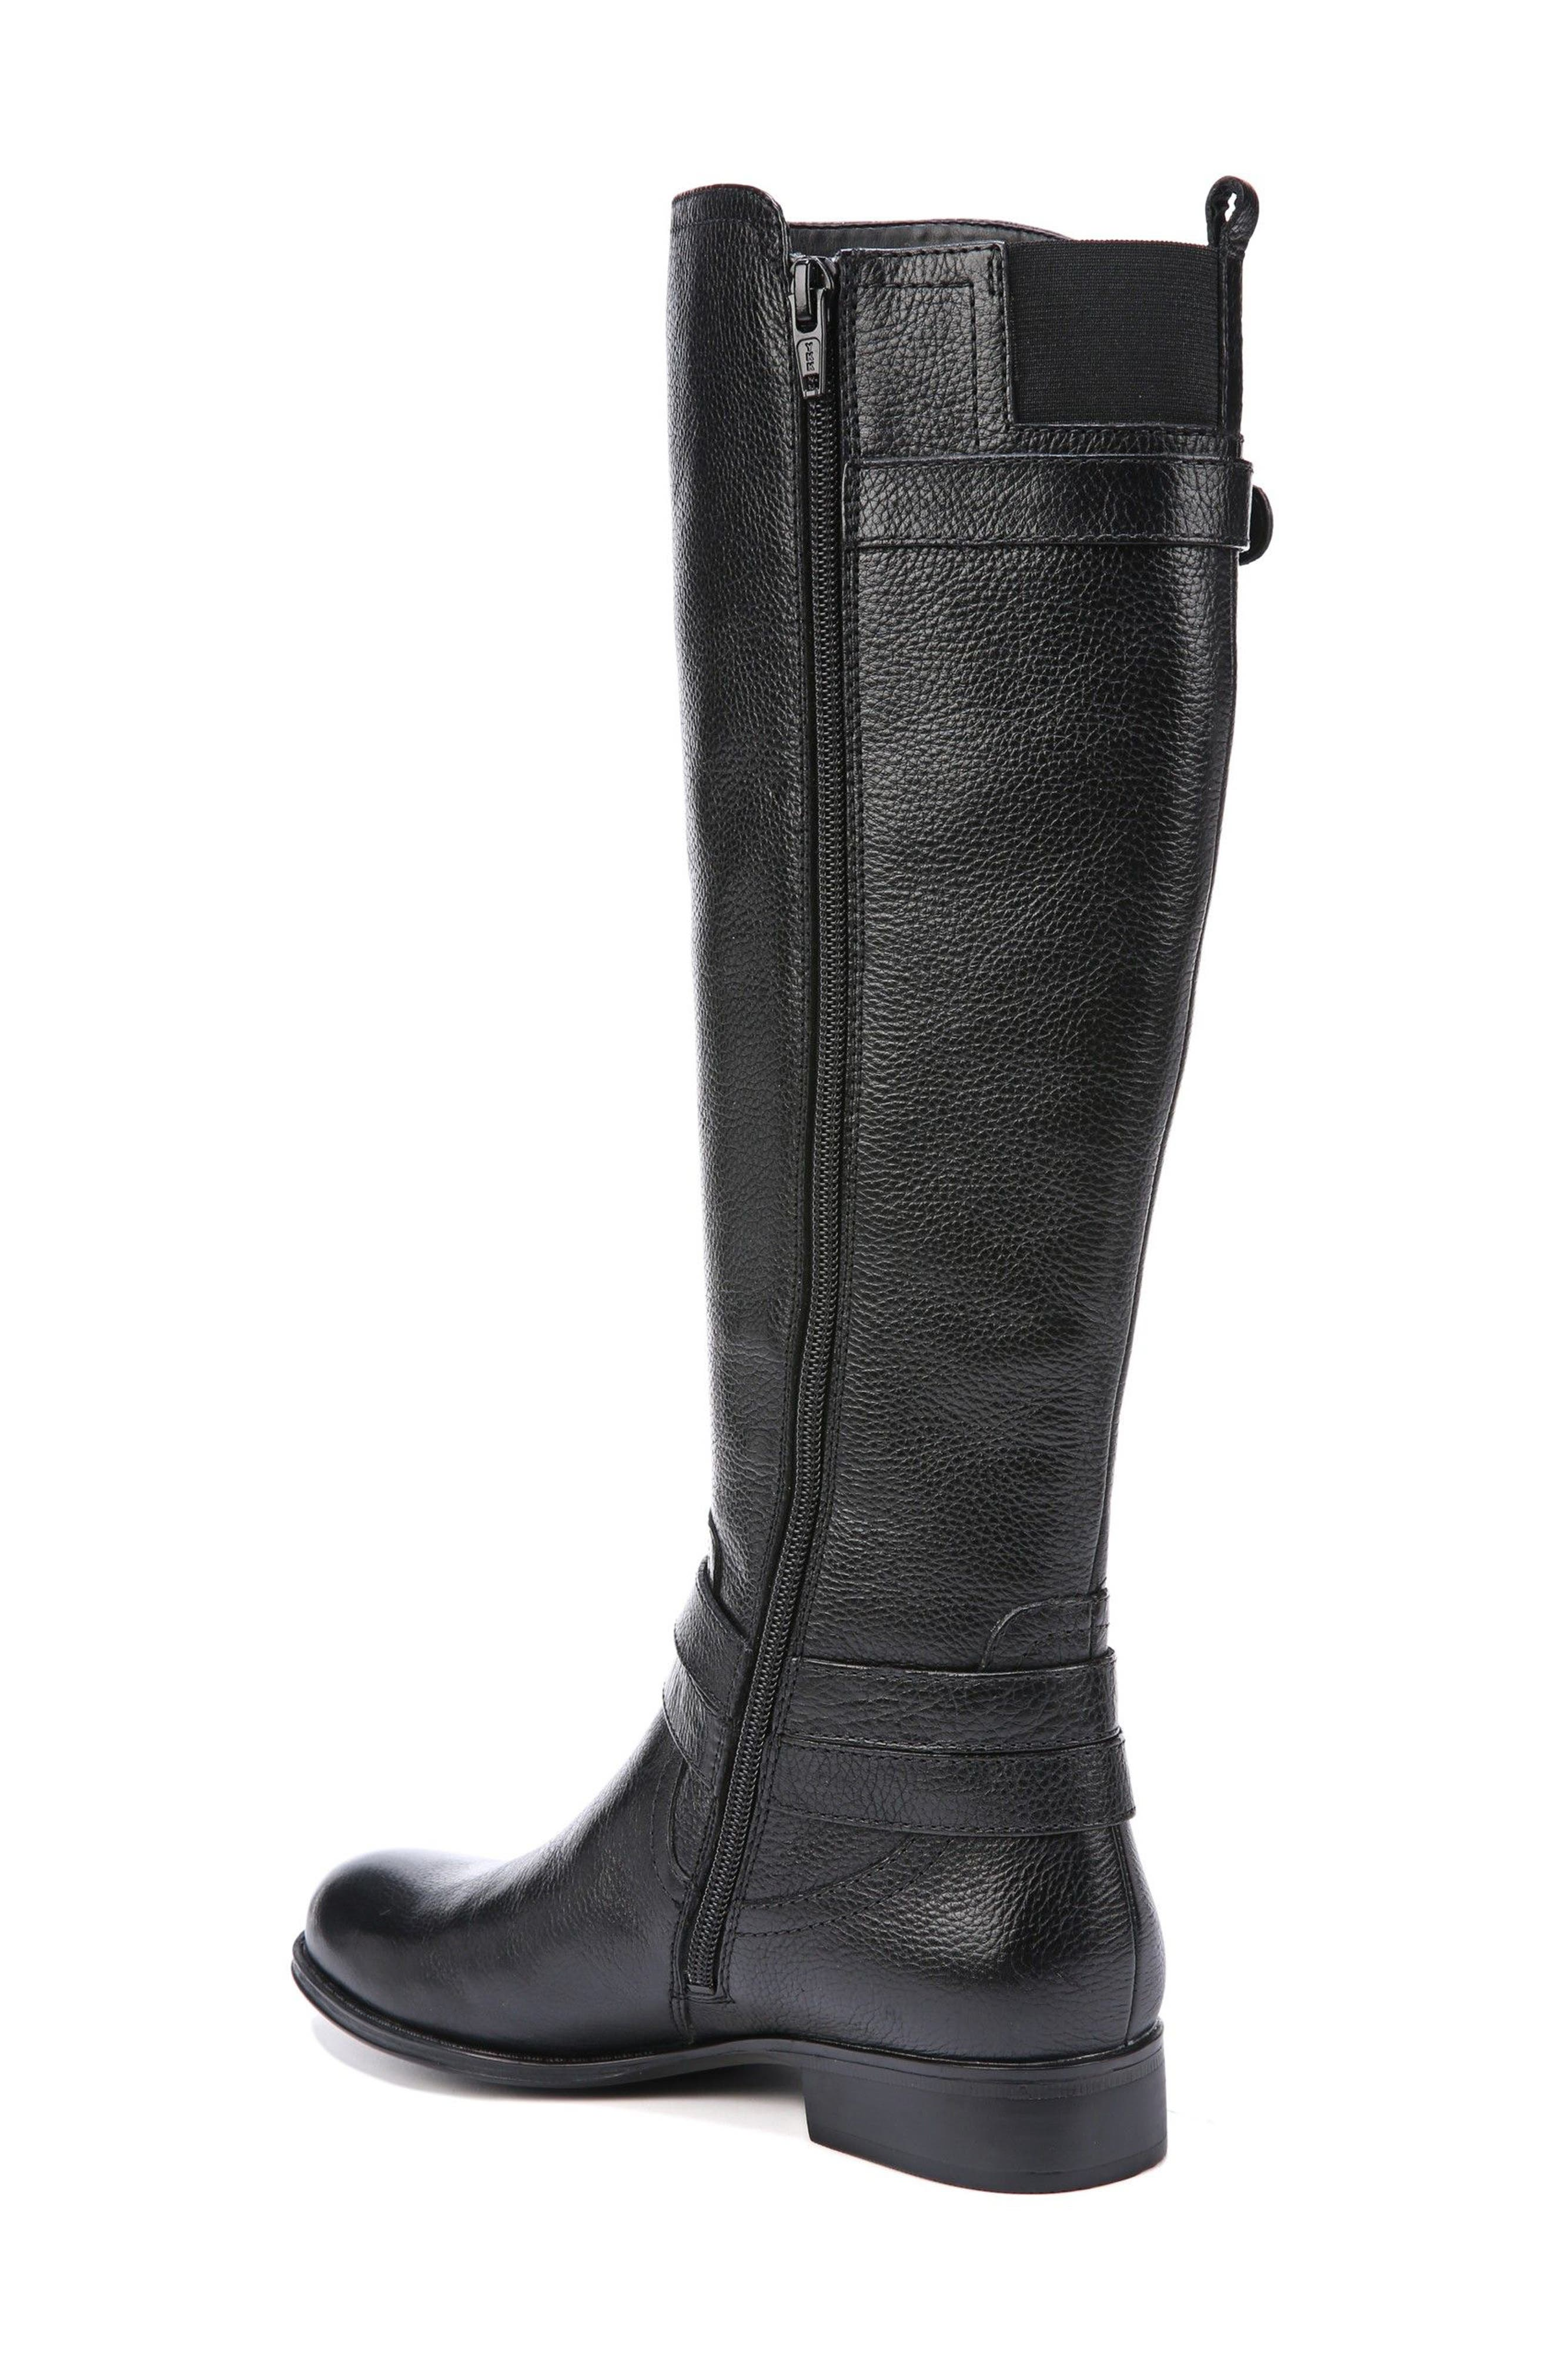 Jodee Knee High Boot,                             Alternate thumbnail 2, color,                             BLACK LEATHER